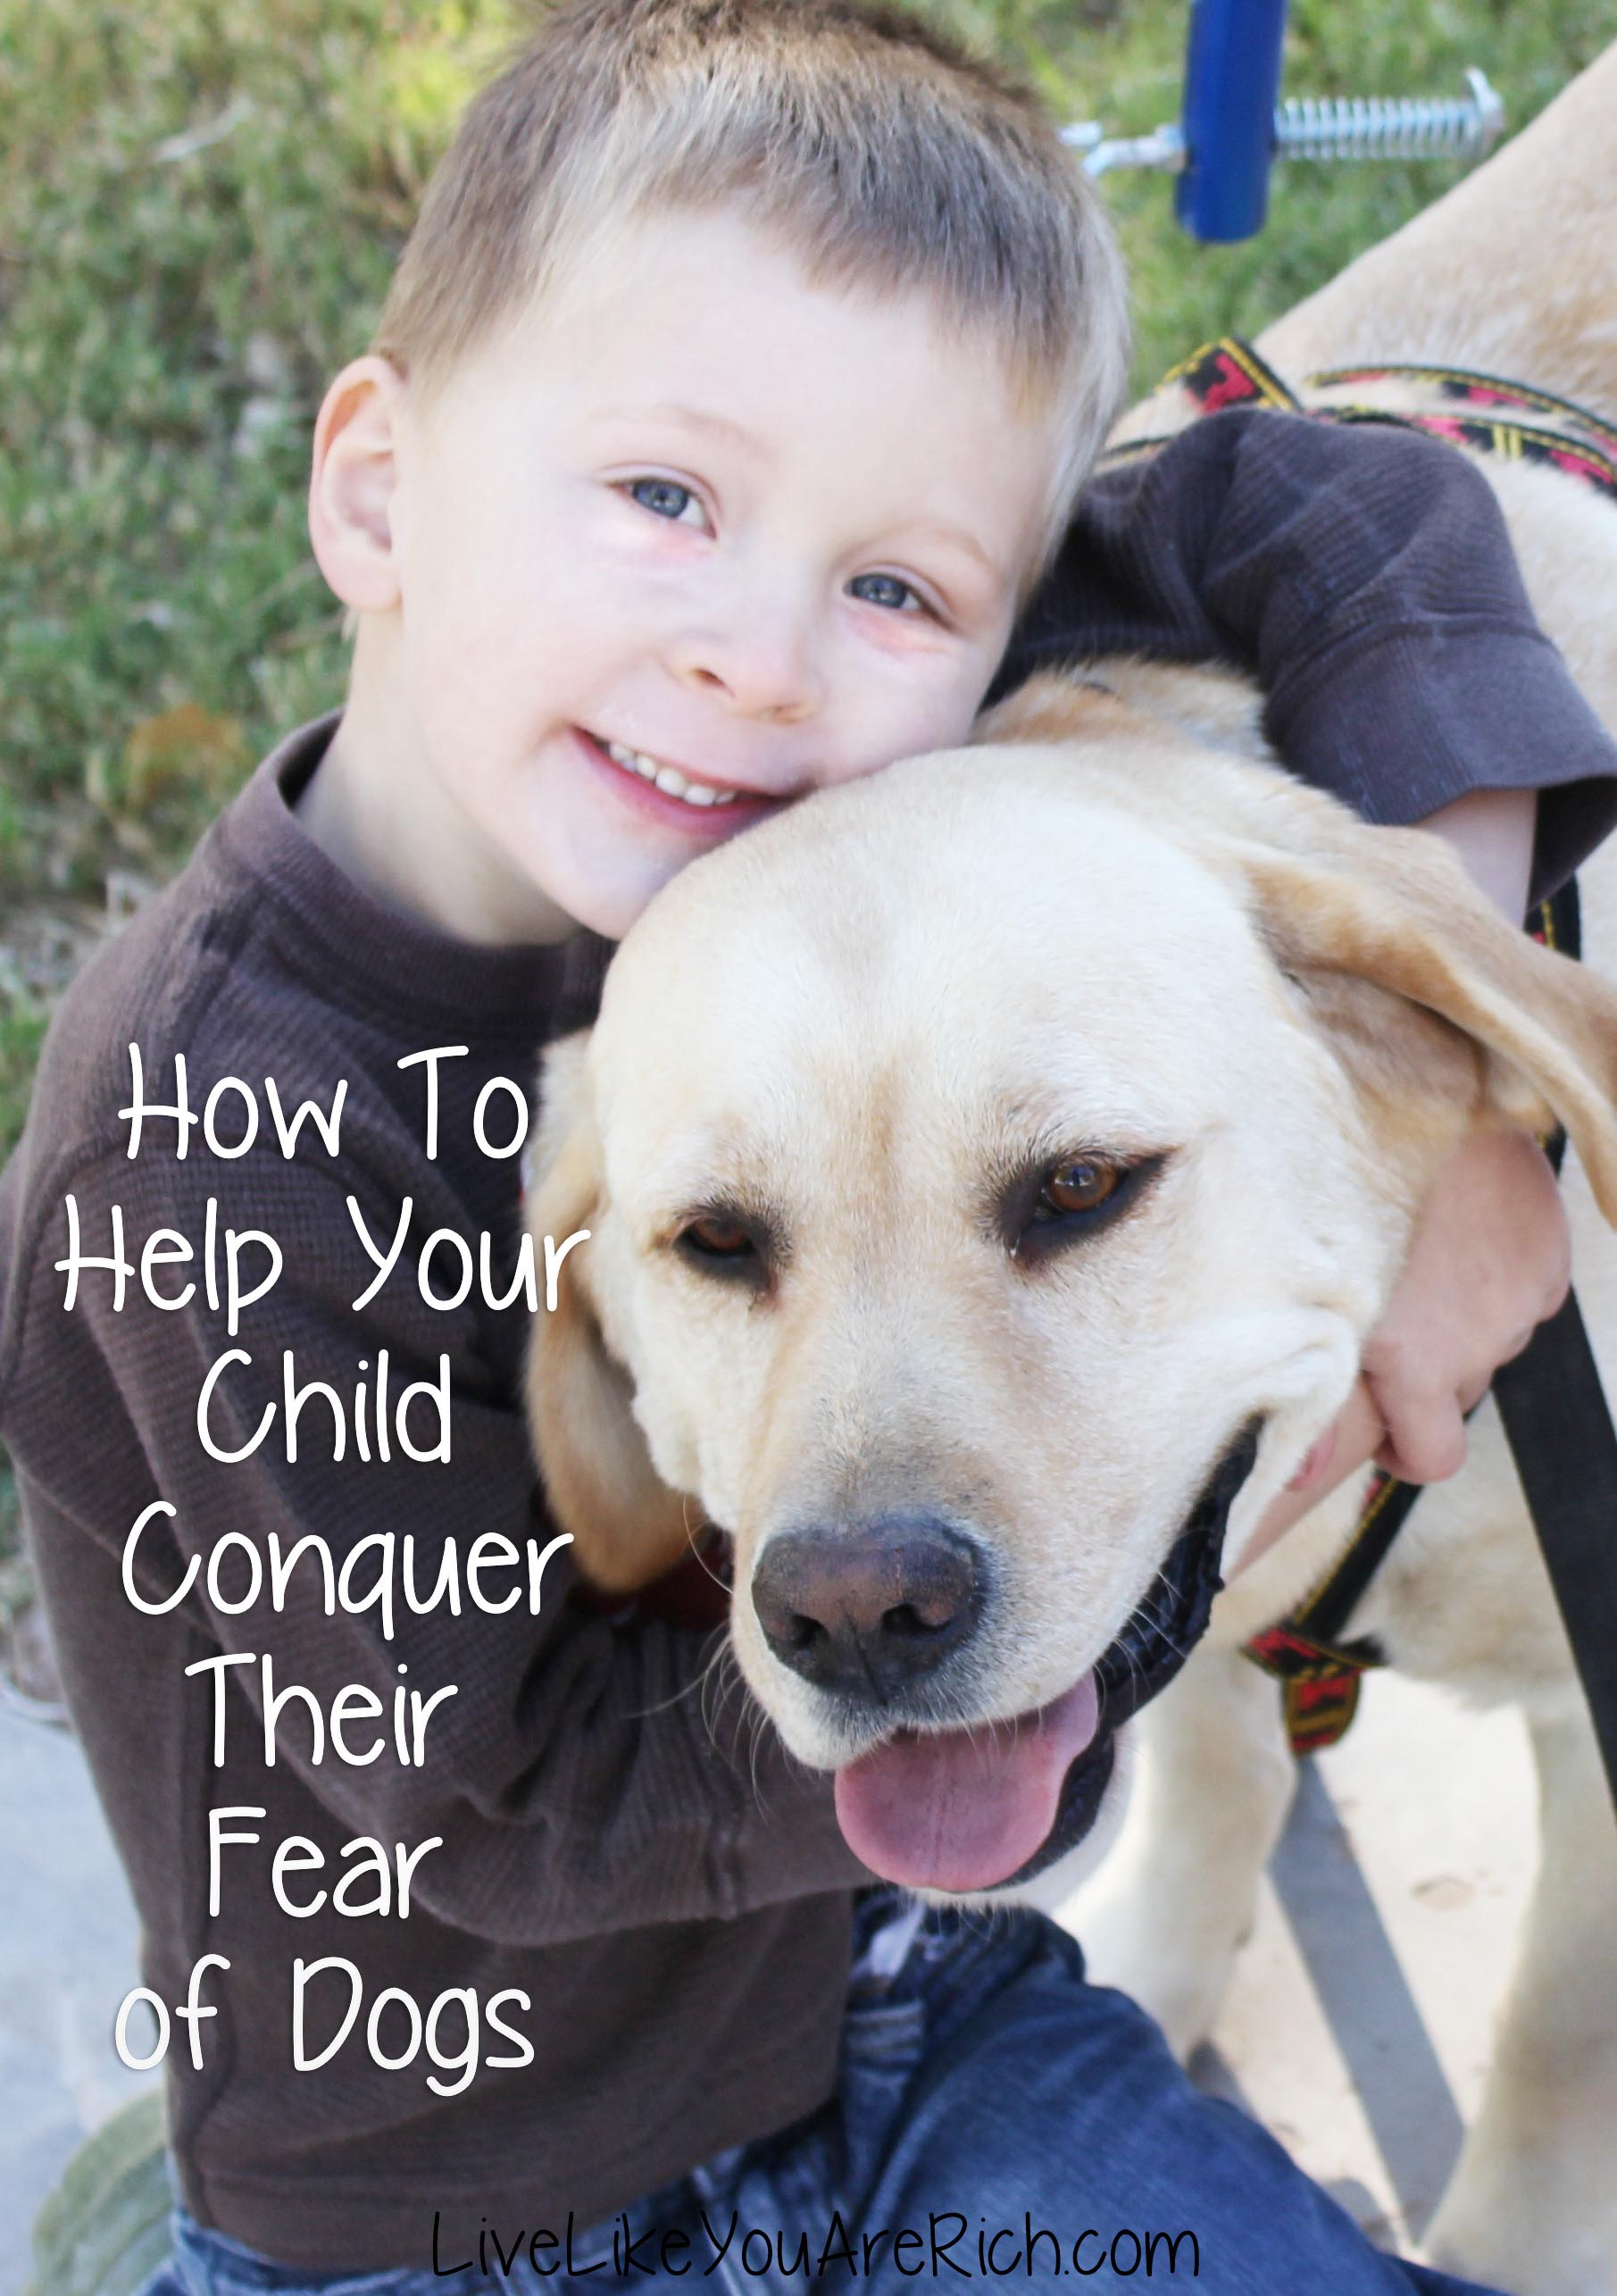 How To Help Your Child Conquer Their Fear of Dogs